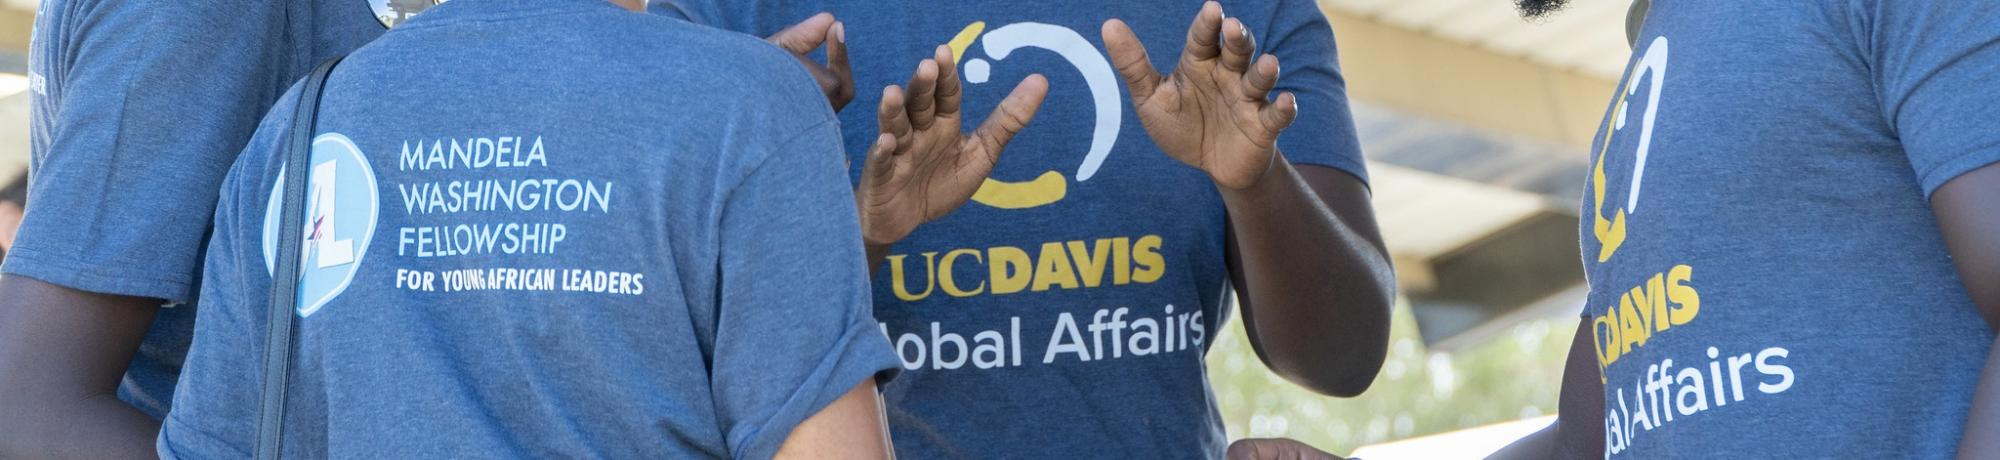 Mandela and Global Affairs t-shirts